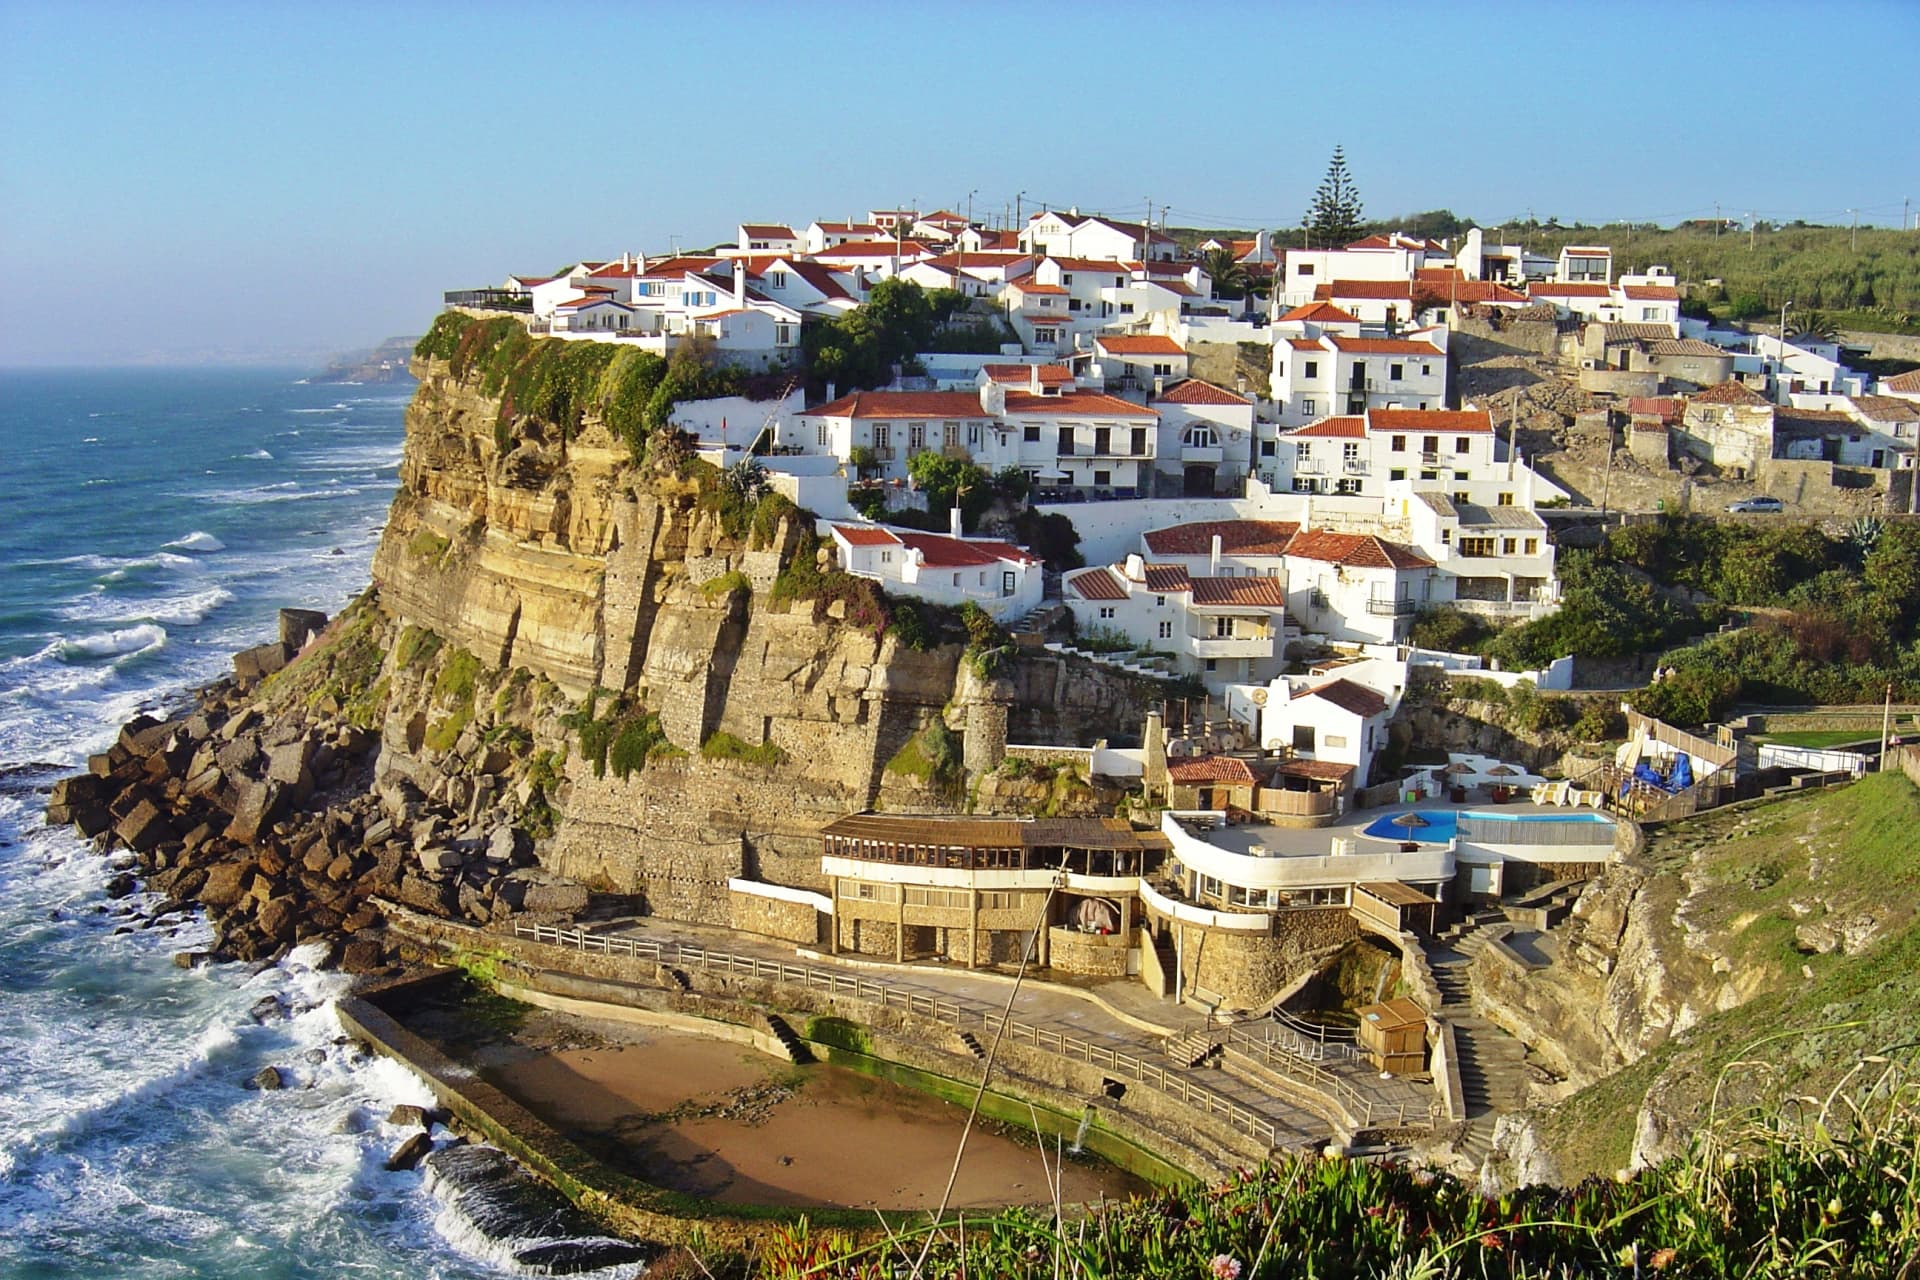 The hilltop village of Azenhas do Mar, along with the coast of Colares. Photo credit: Leoboudv.